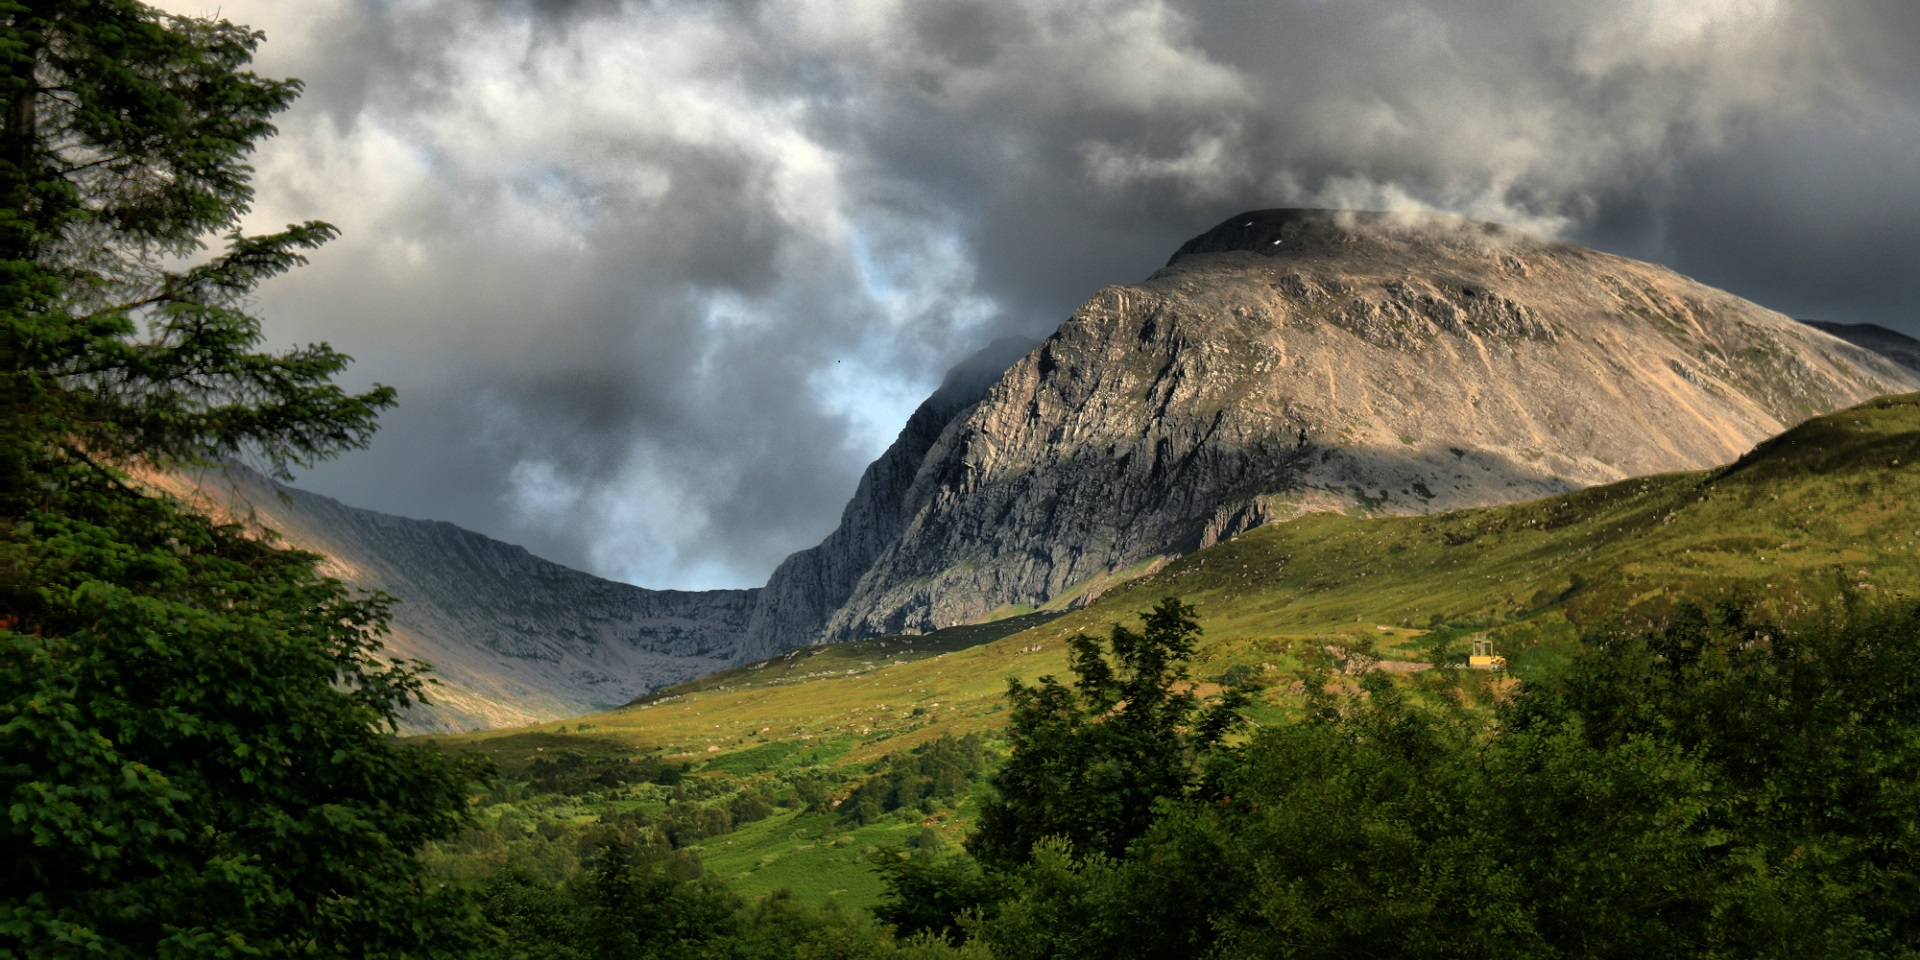 Southwest highlands mountain weather forecast met office - Met office mountain forecast ...